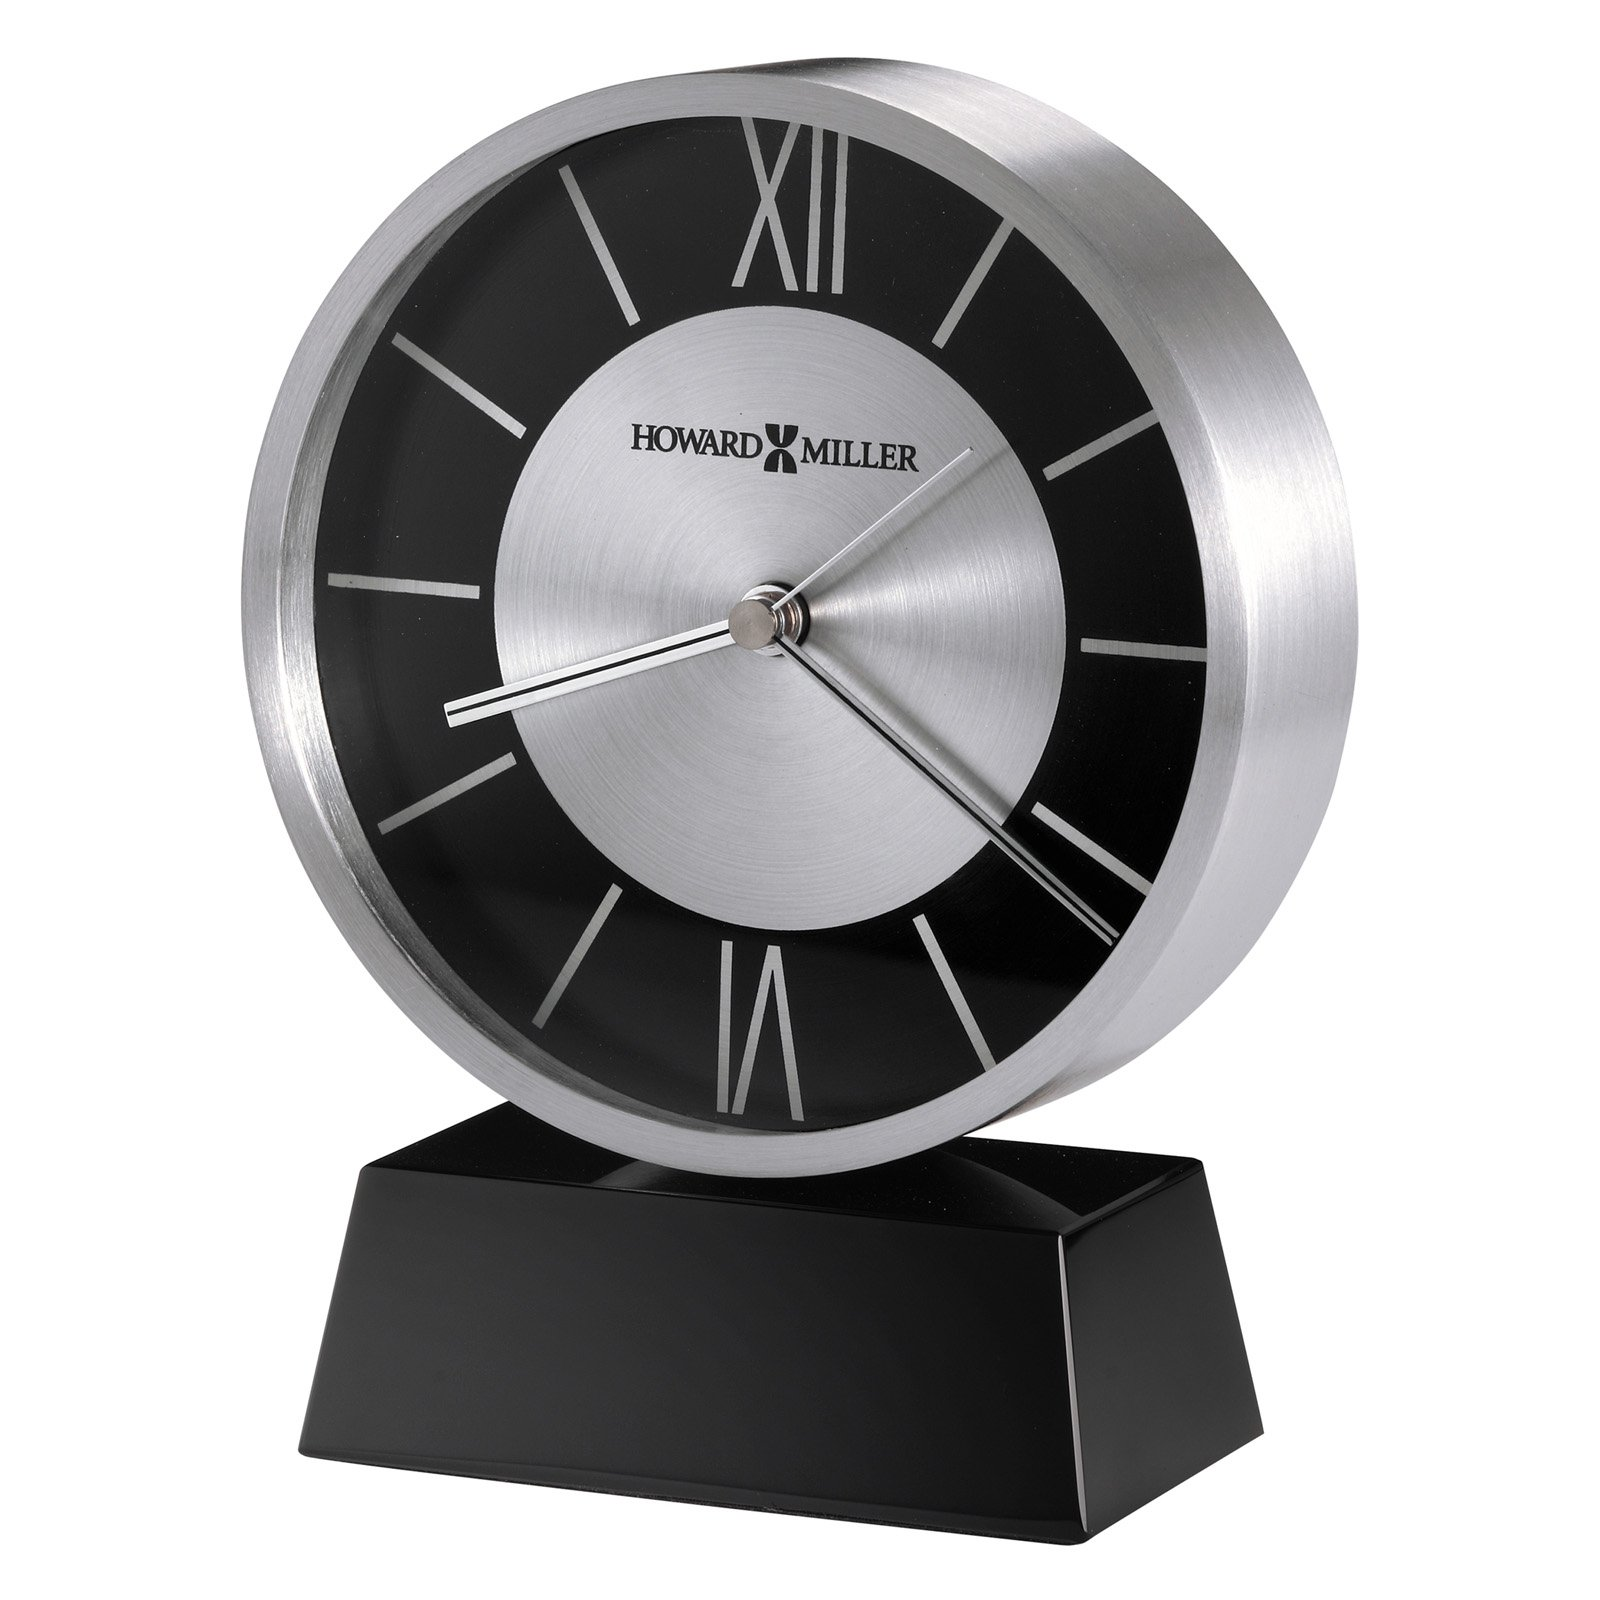 Howard Miller 5.25 in. Davis Desk Clock by Howard Miller